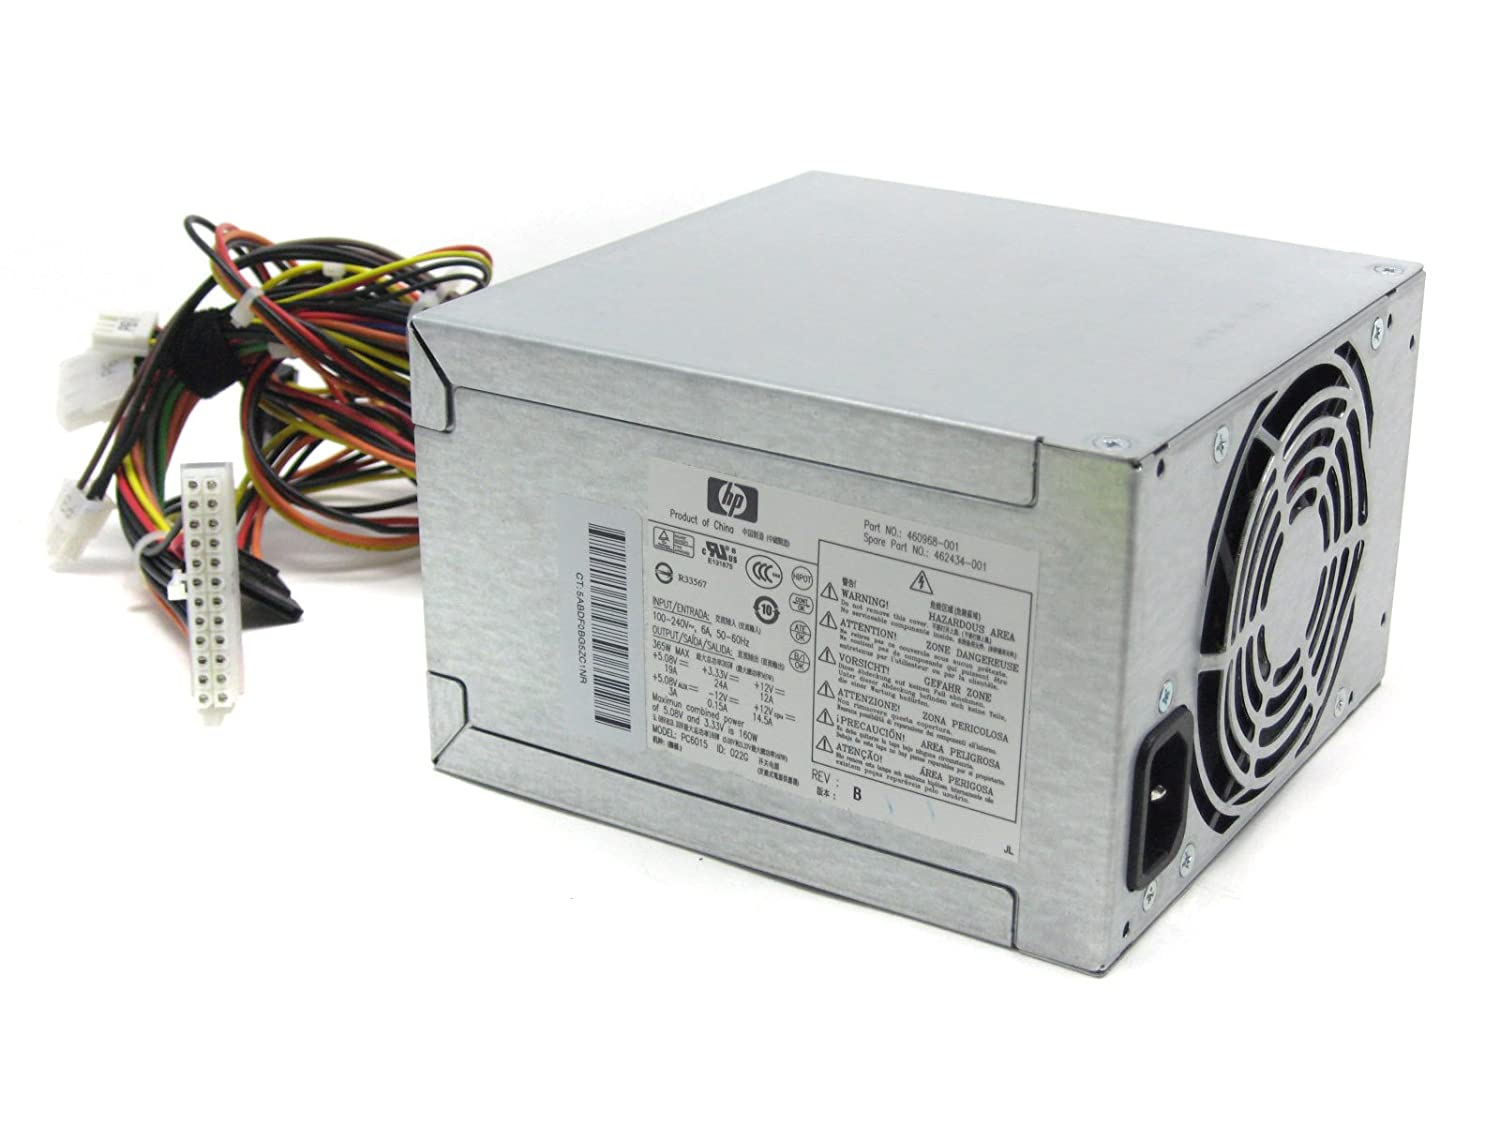 Amazon.com: New 480W Nickel Coating Power Supply with special ...